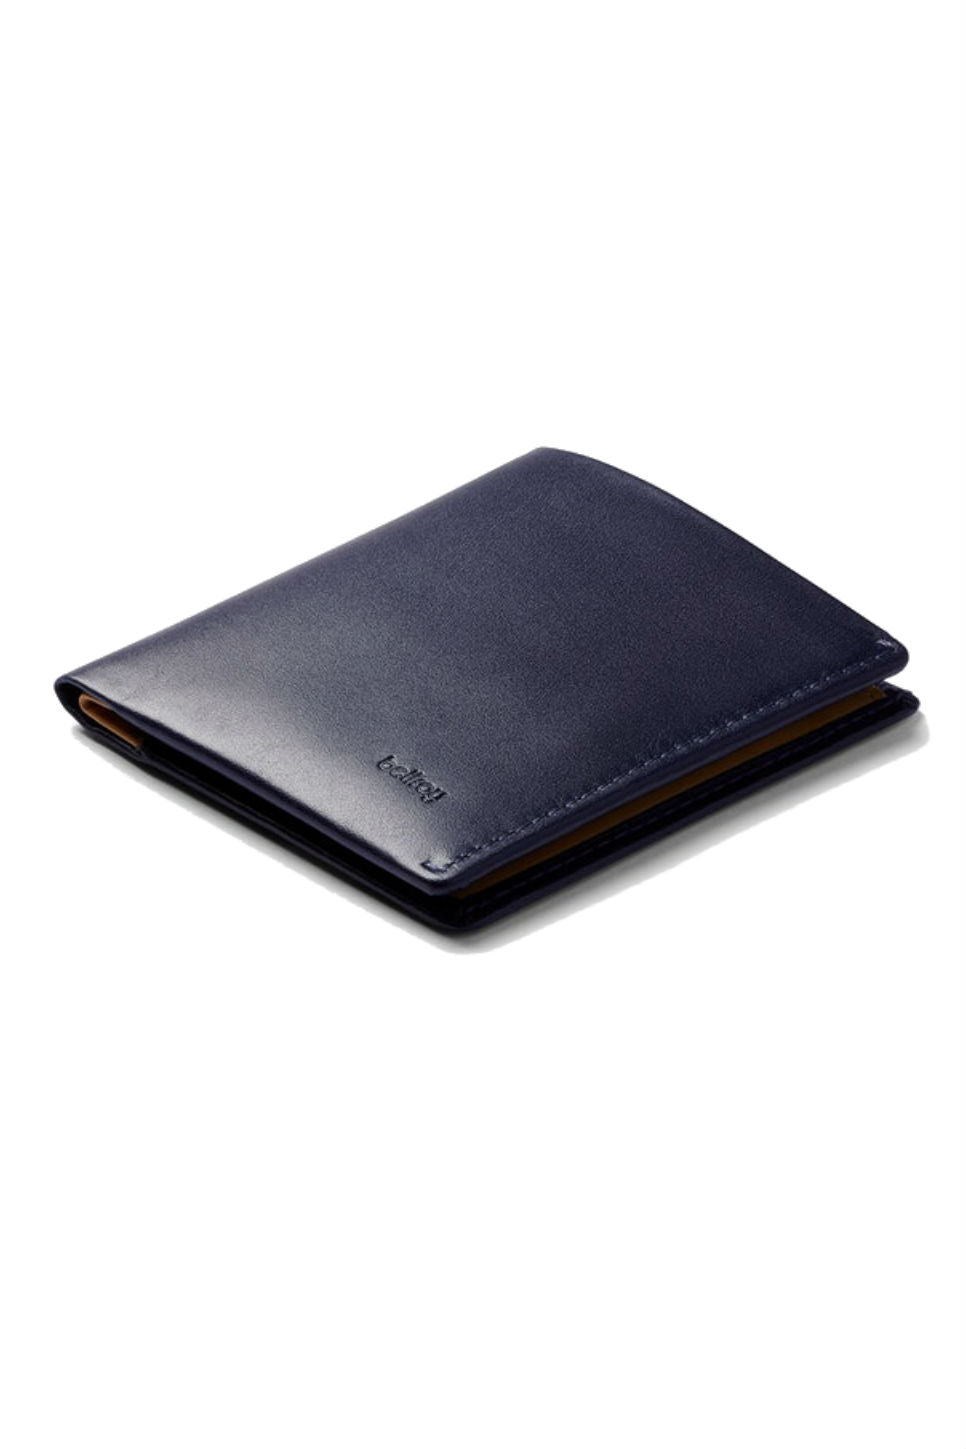 Bellroy - RFID Note Sleeve - Navy